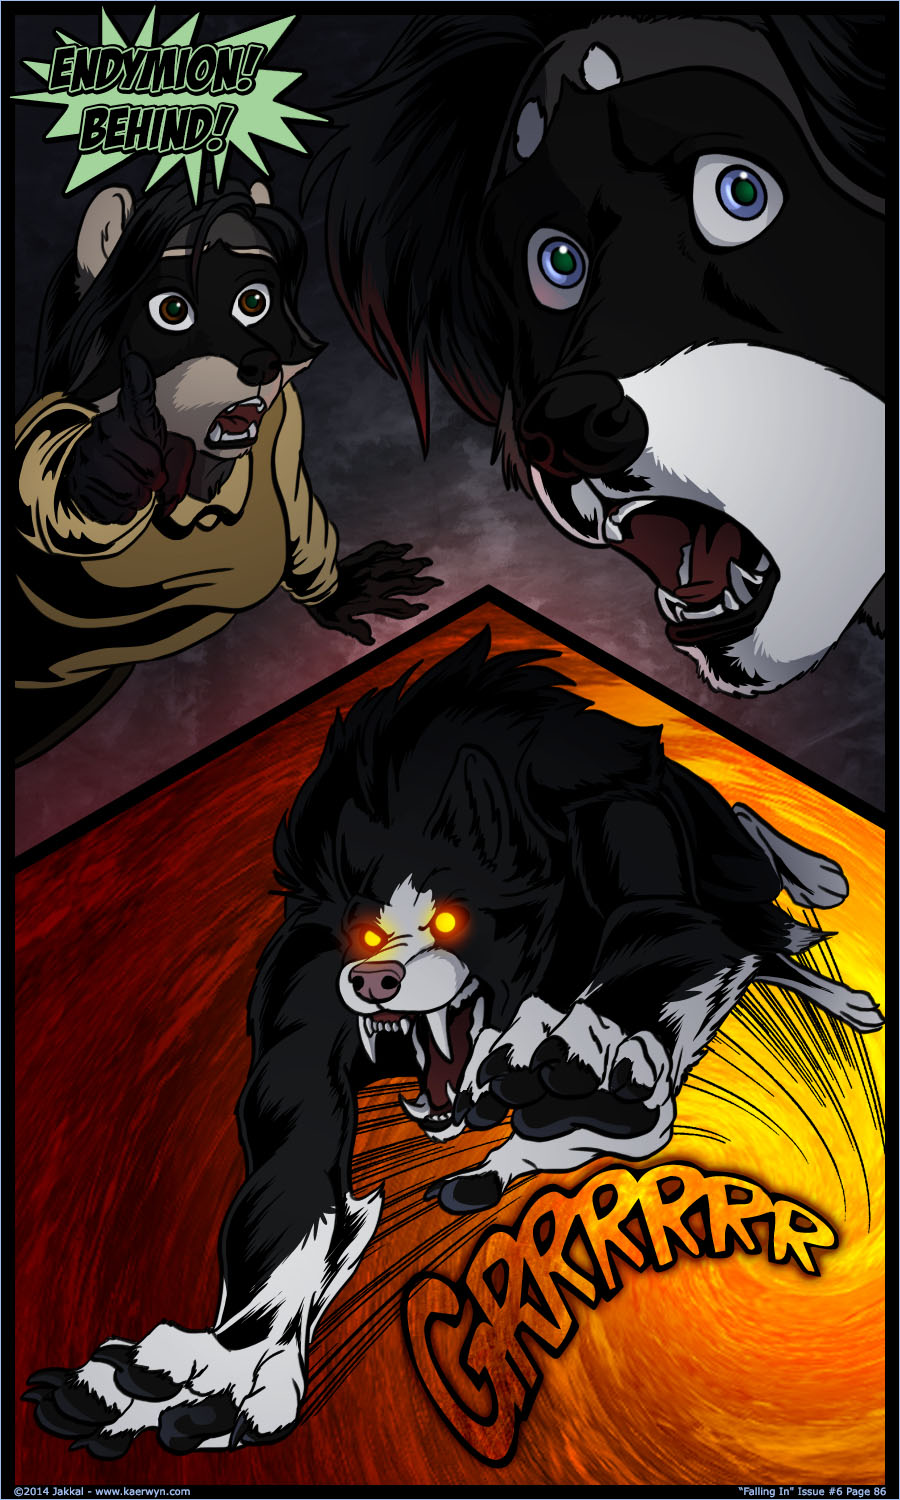 Issue 6 Page 86